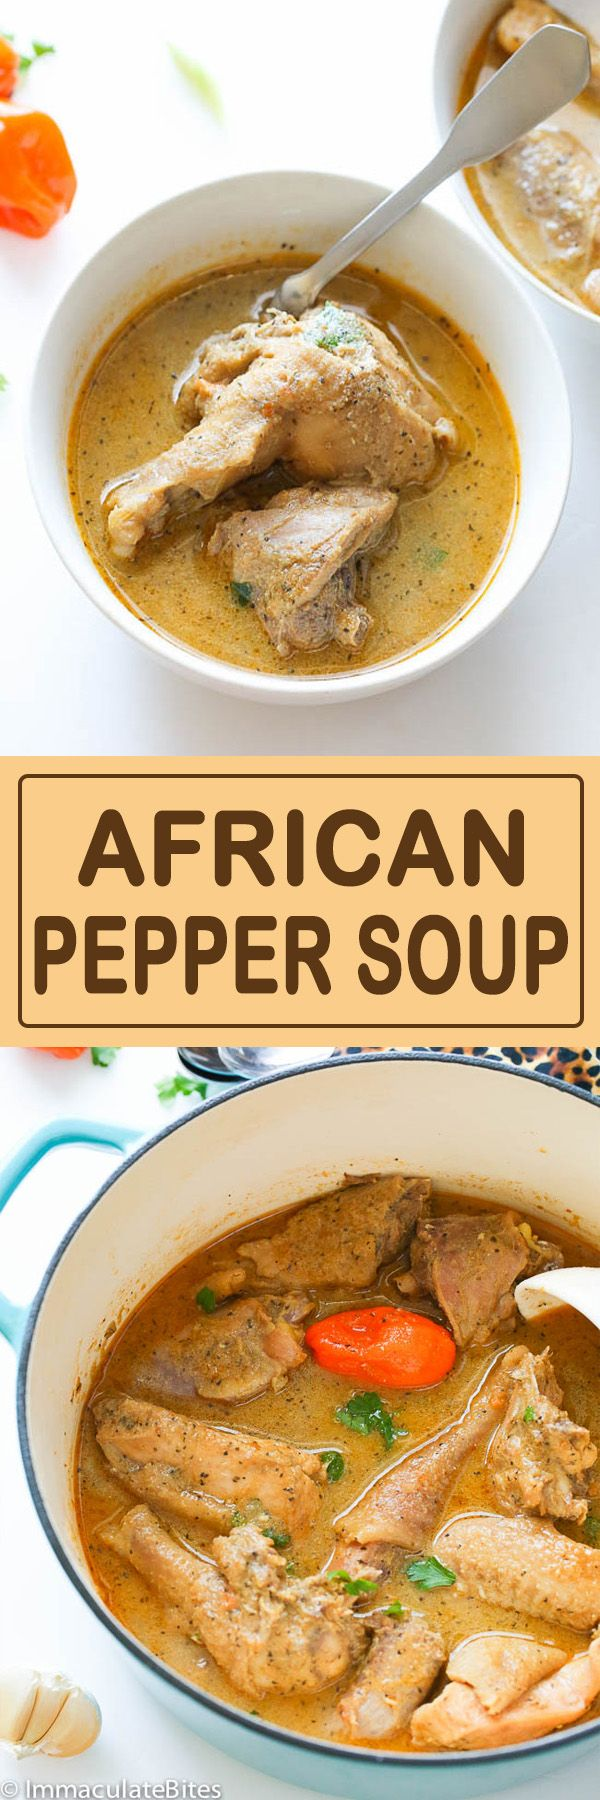 African pepper soup is a delightfully ,intensely flavored soup that is served throughout West Africa, especially in Nigeria, Cameroon and other neighboring African countries.